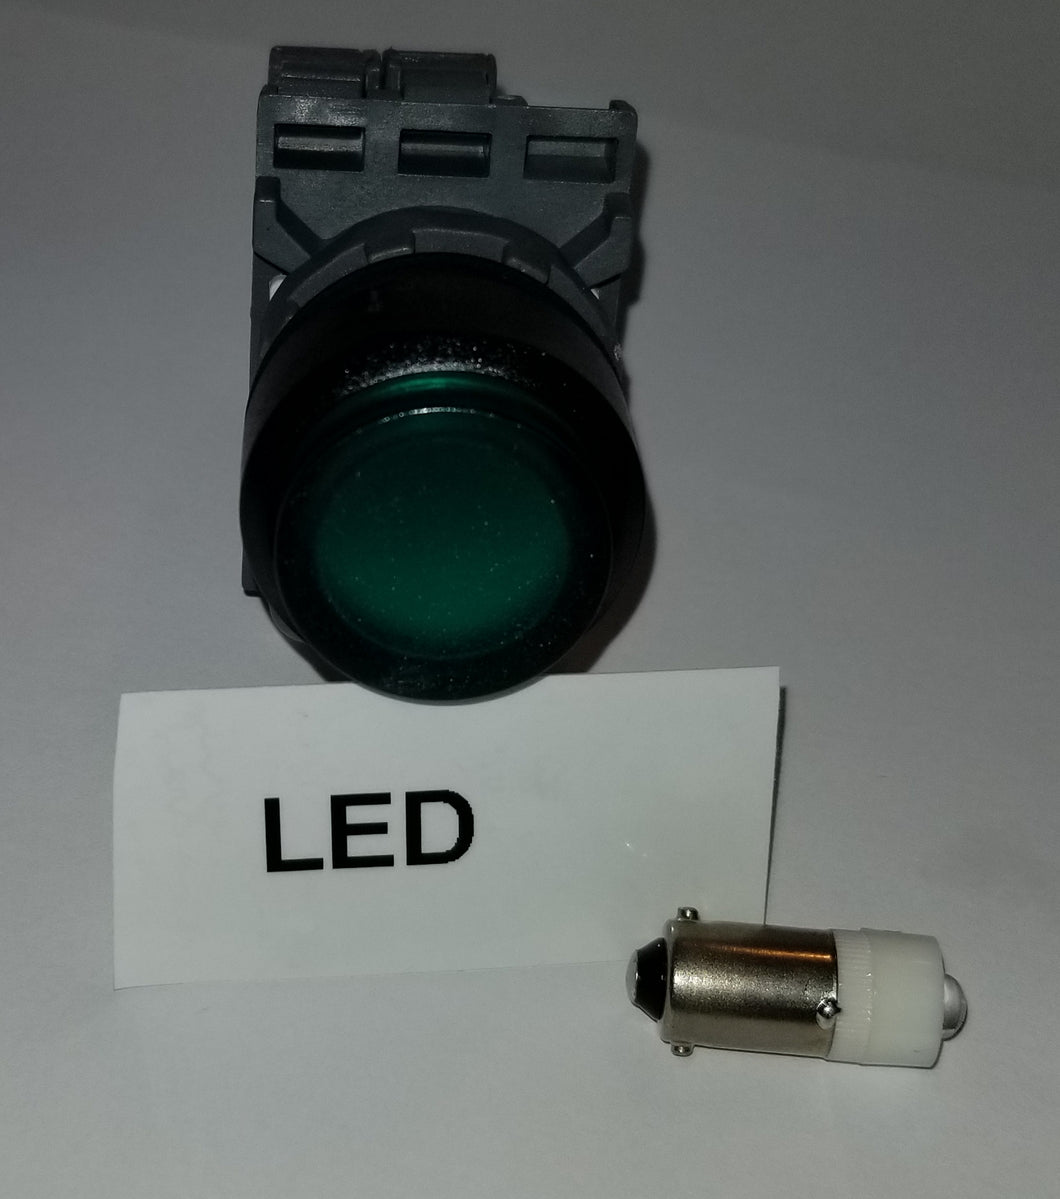 984822 LED Start Switch